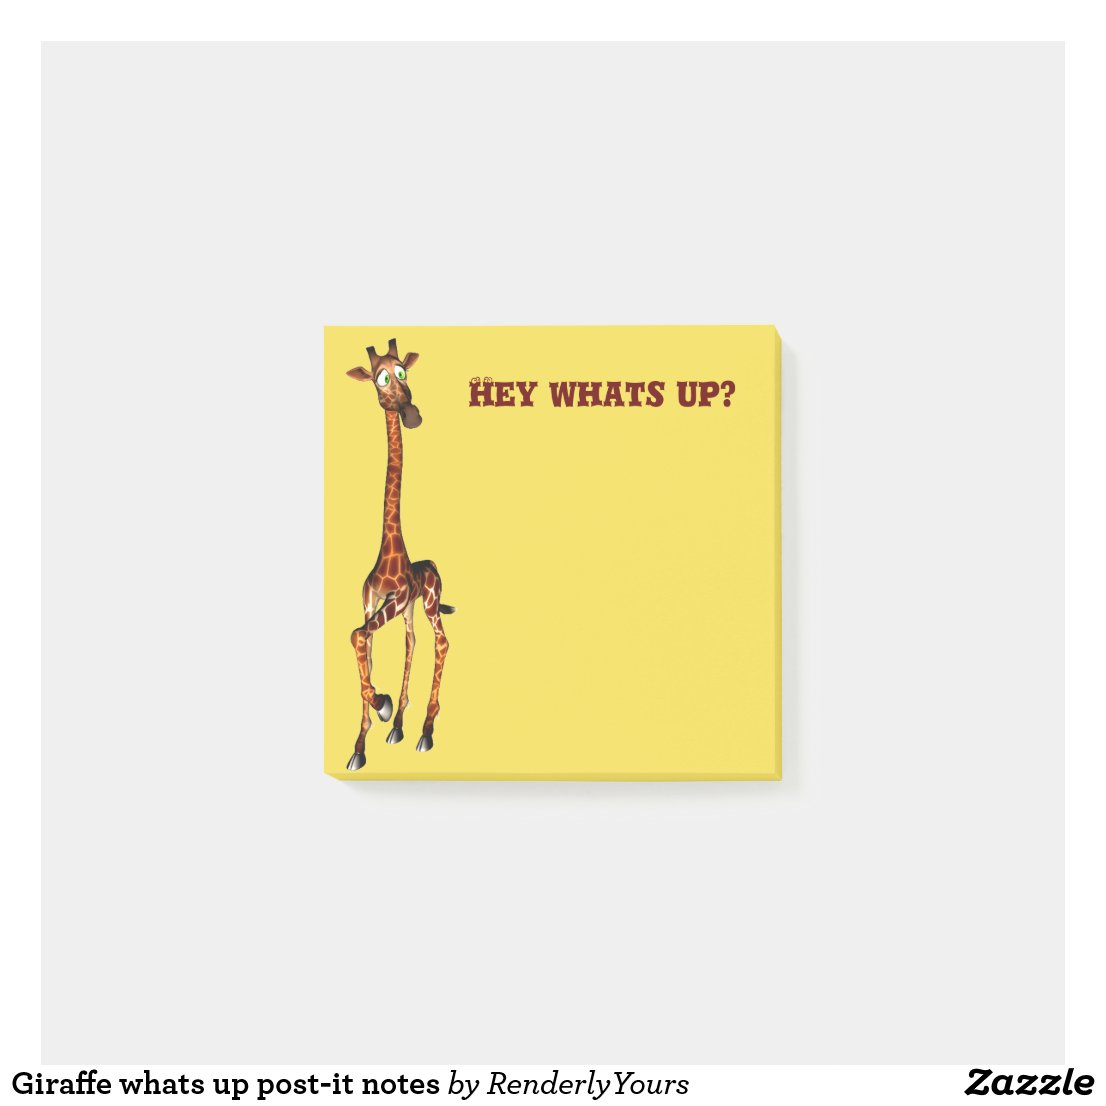 Giraffe whats up post-it notes